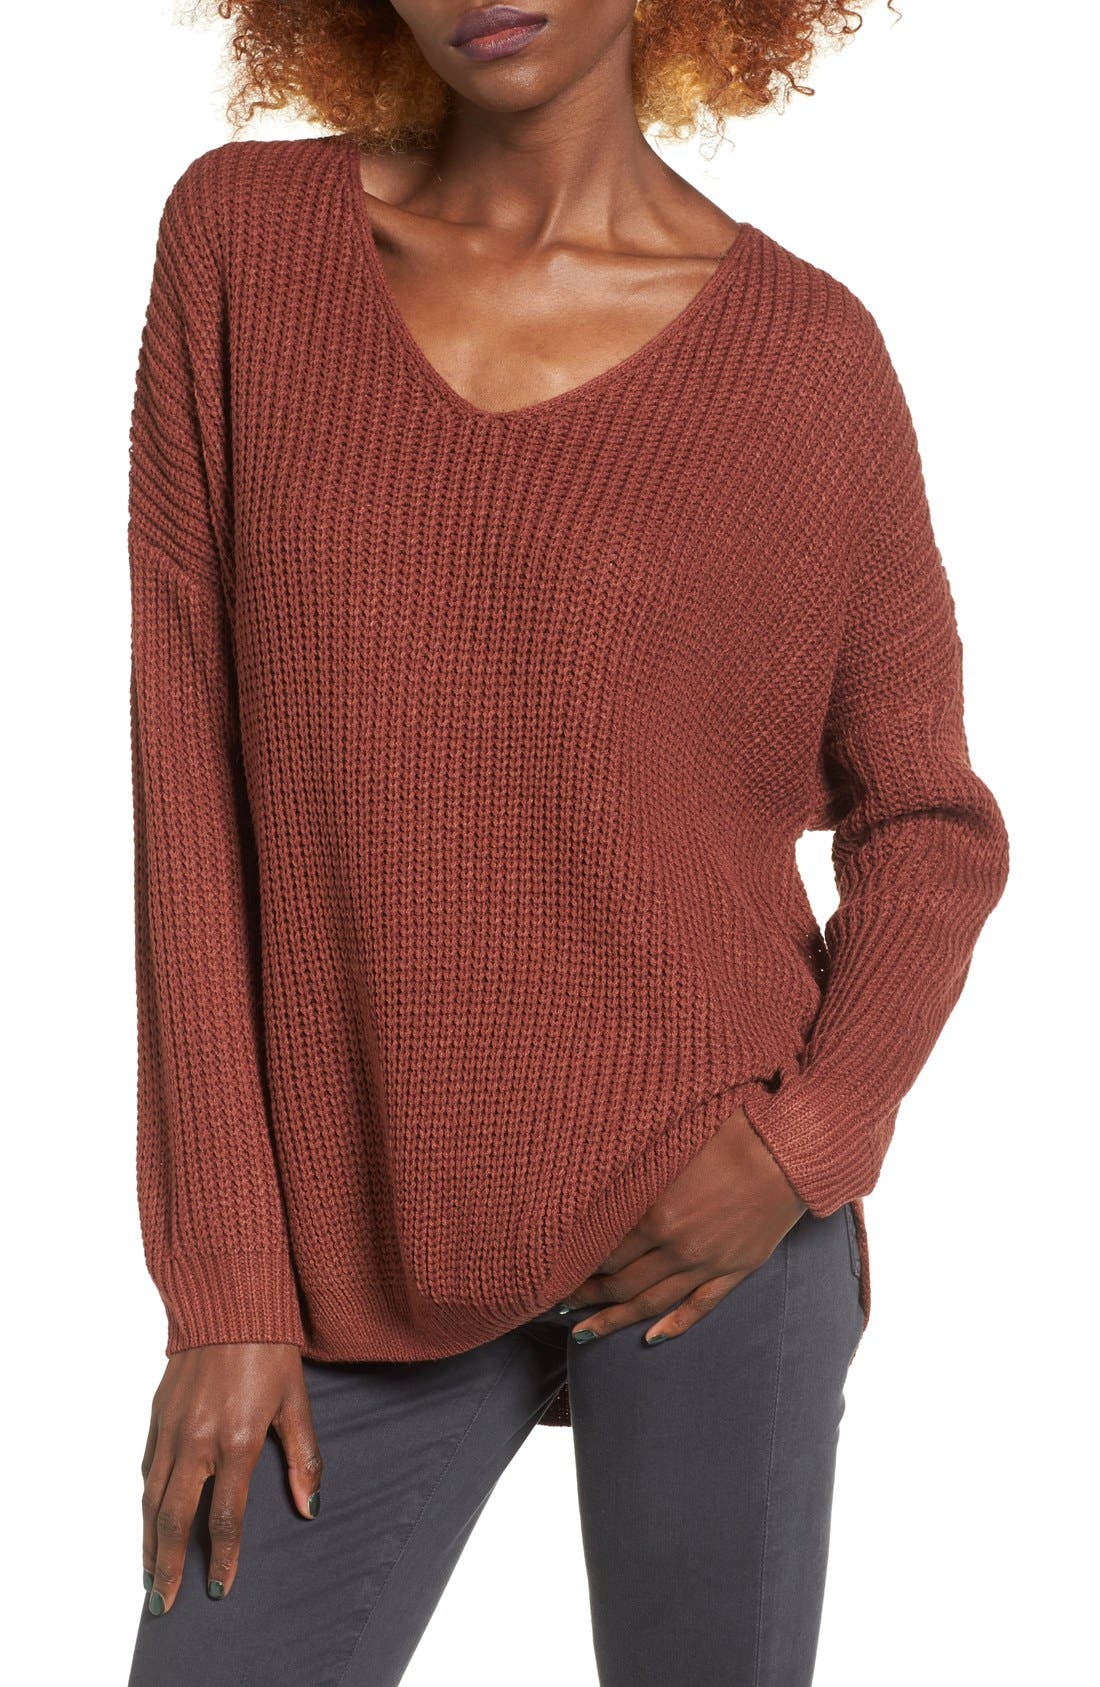 Dreamers by Debut Cotton Blend Tunic